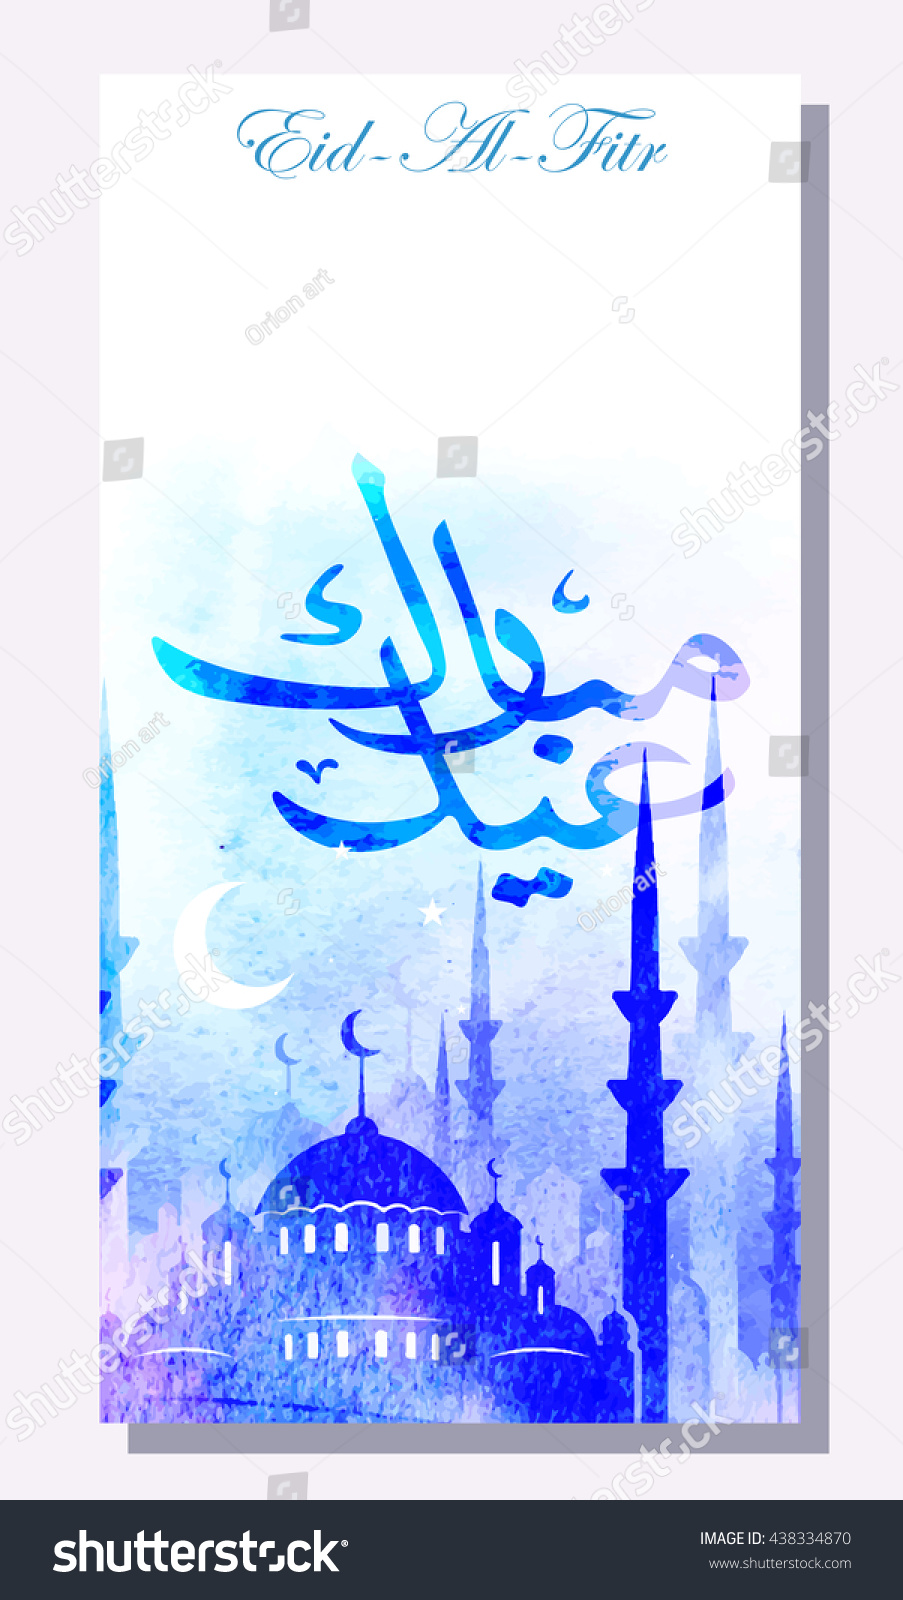 Calligraphy arabic text eid al fitr stock illustration 438334870 calligraphy of arabic text eid al fitr feast of breaking the fast kristyandbryce Choice Image